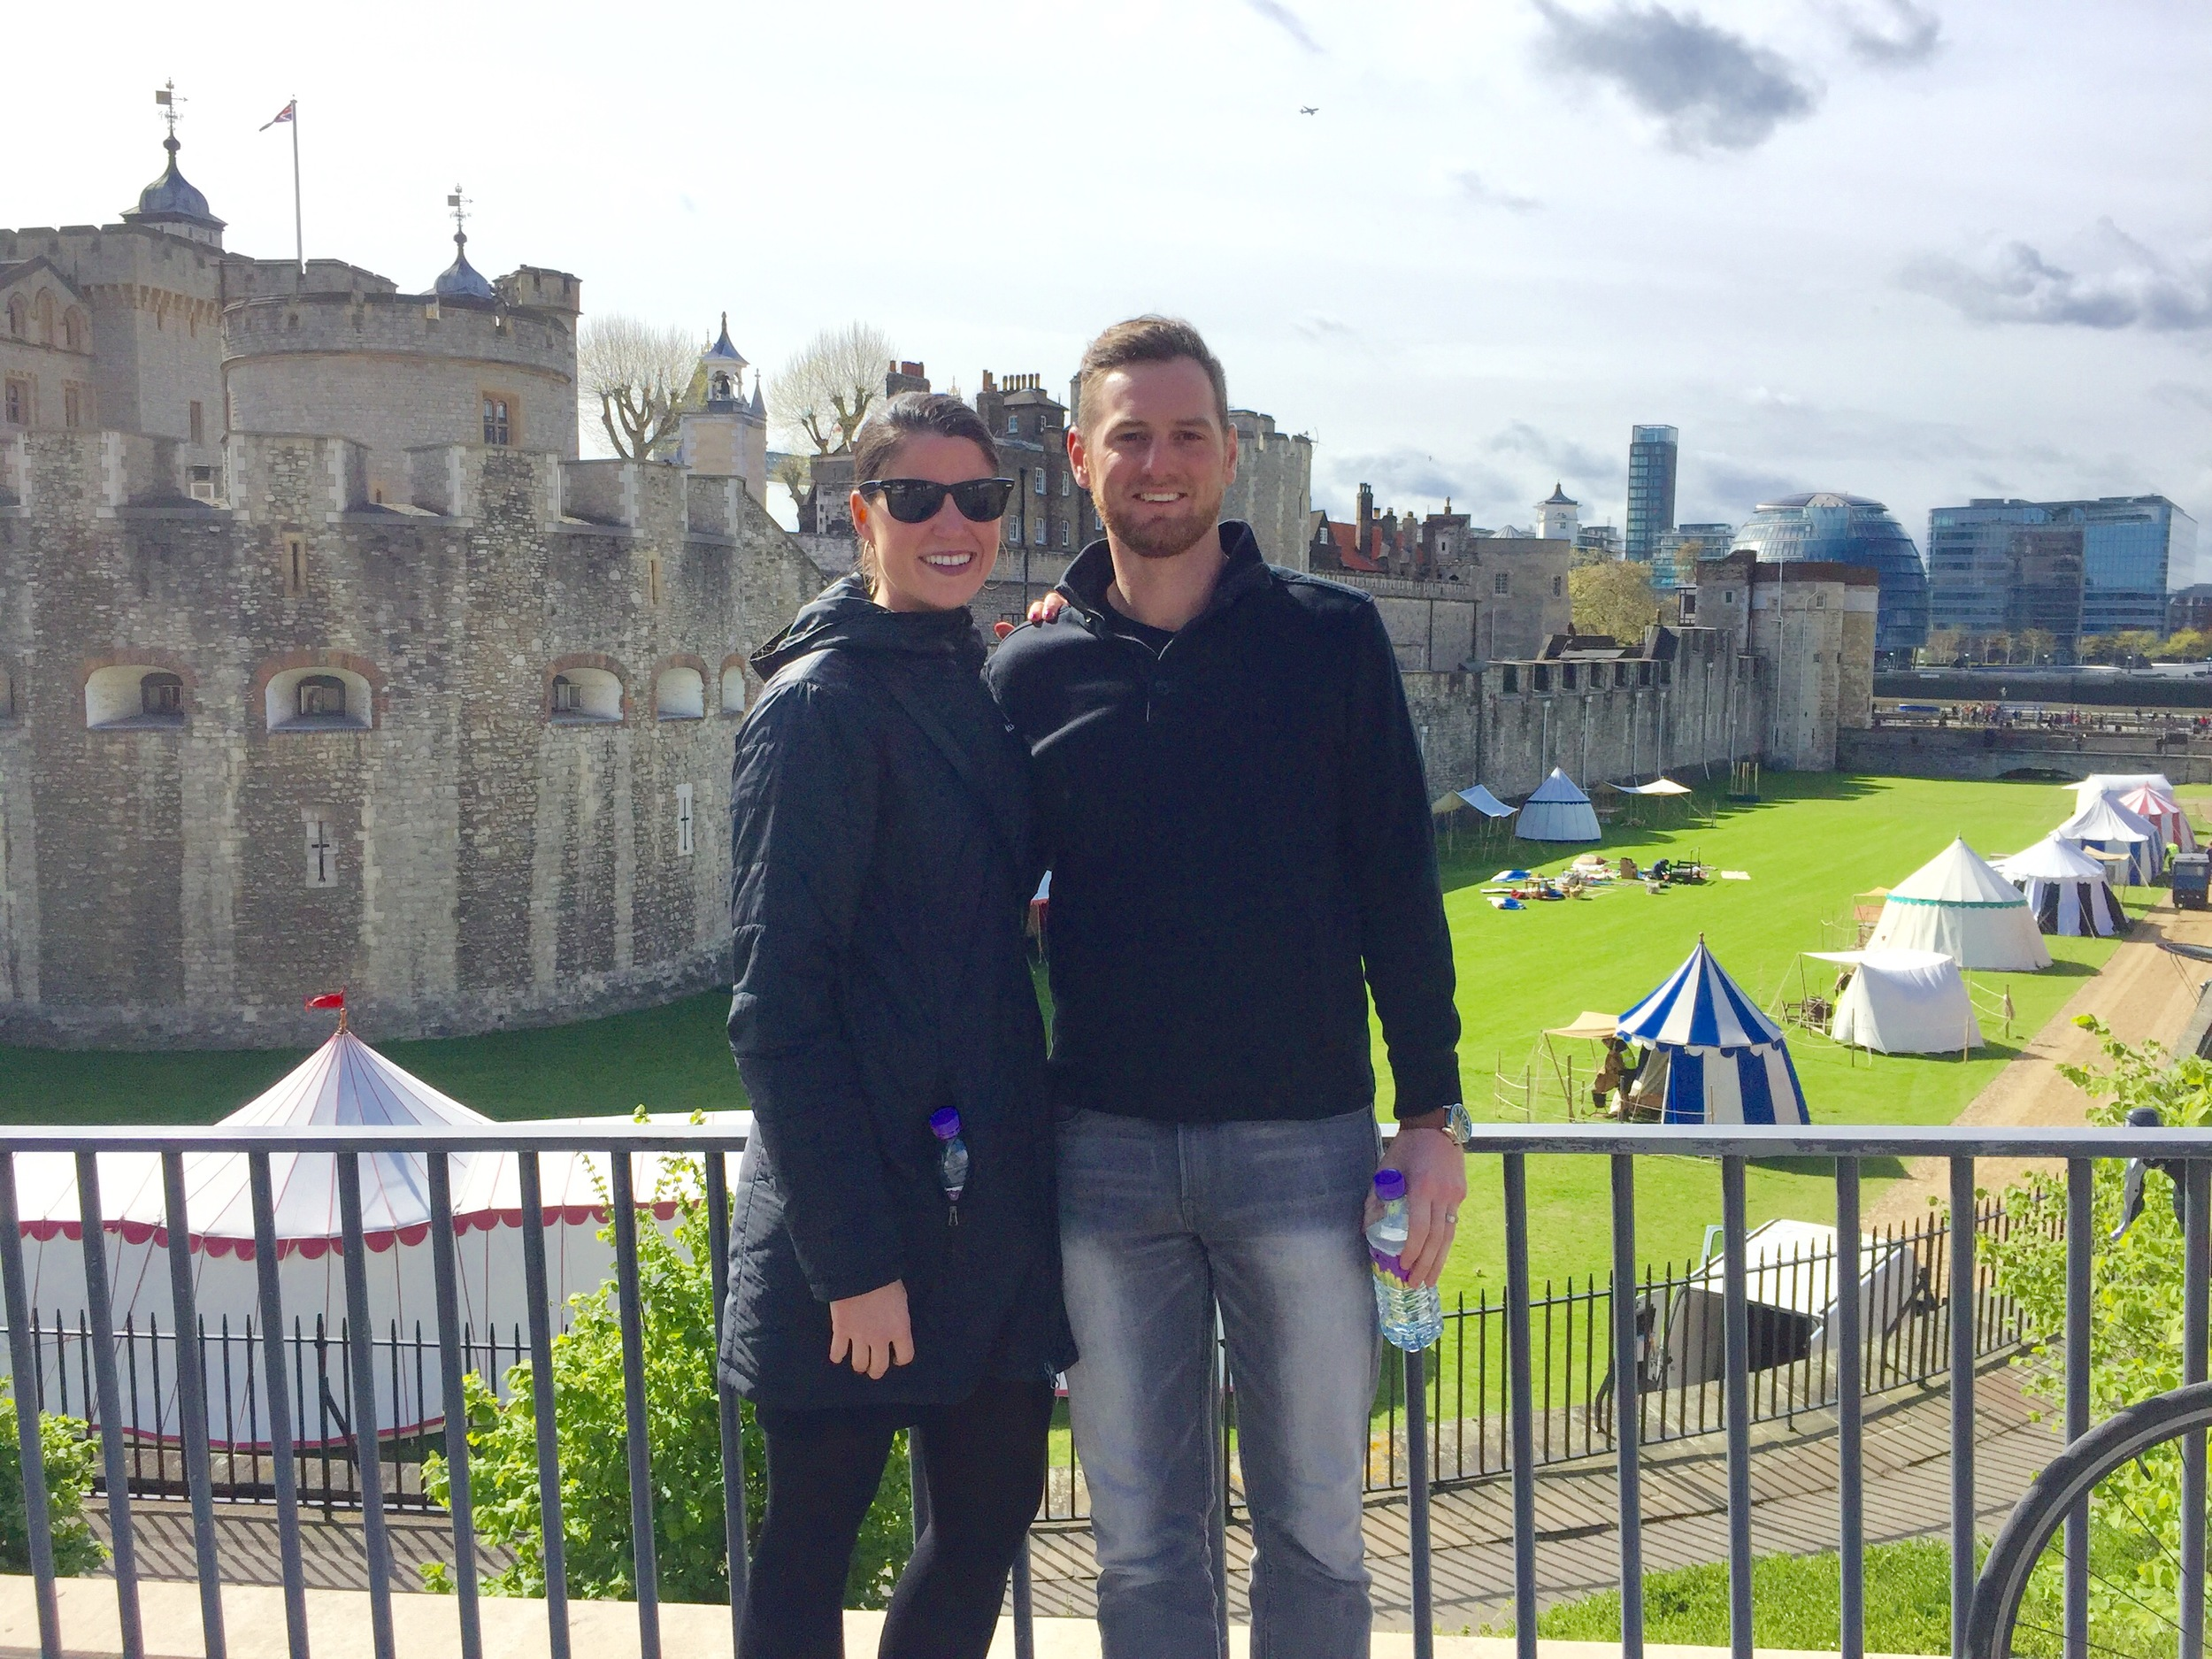 In front of the Tower of London.